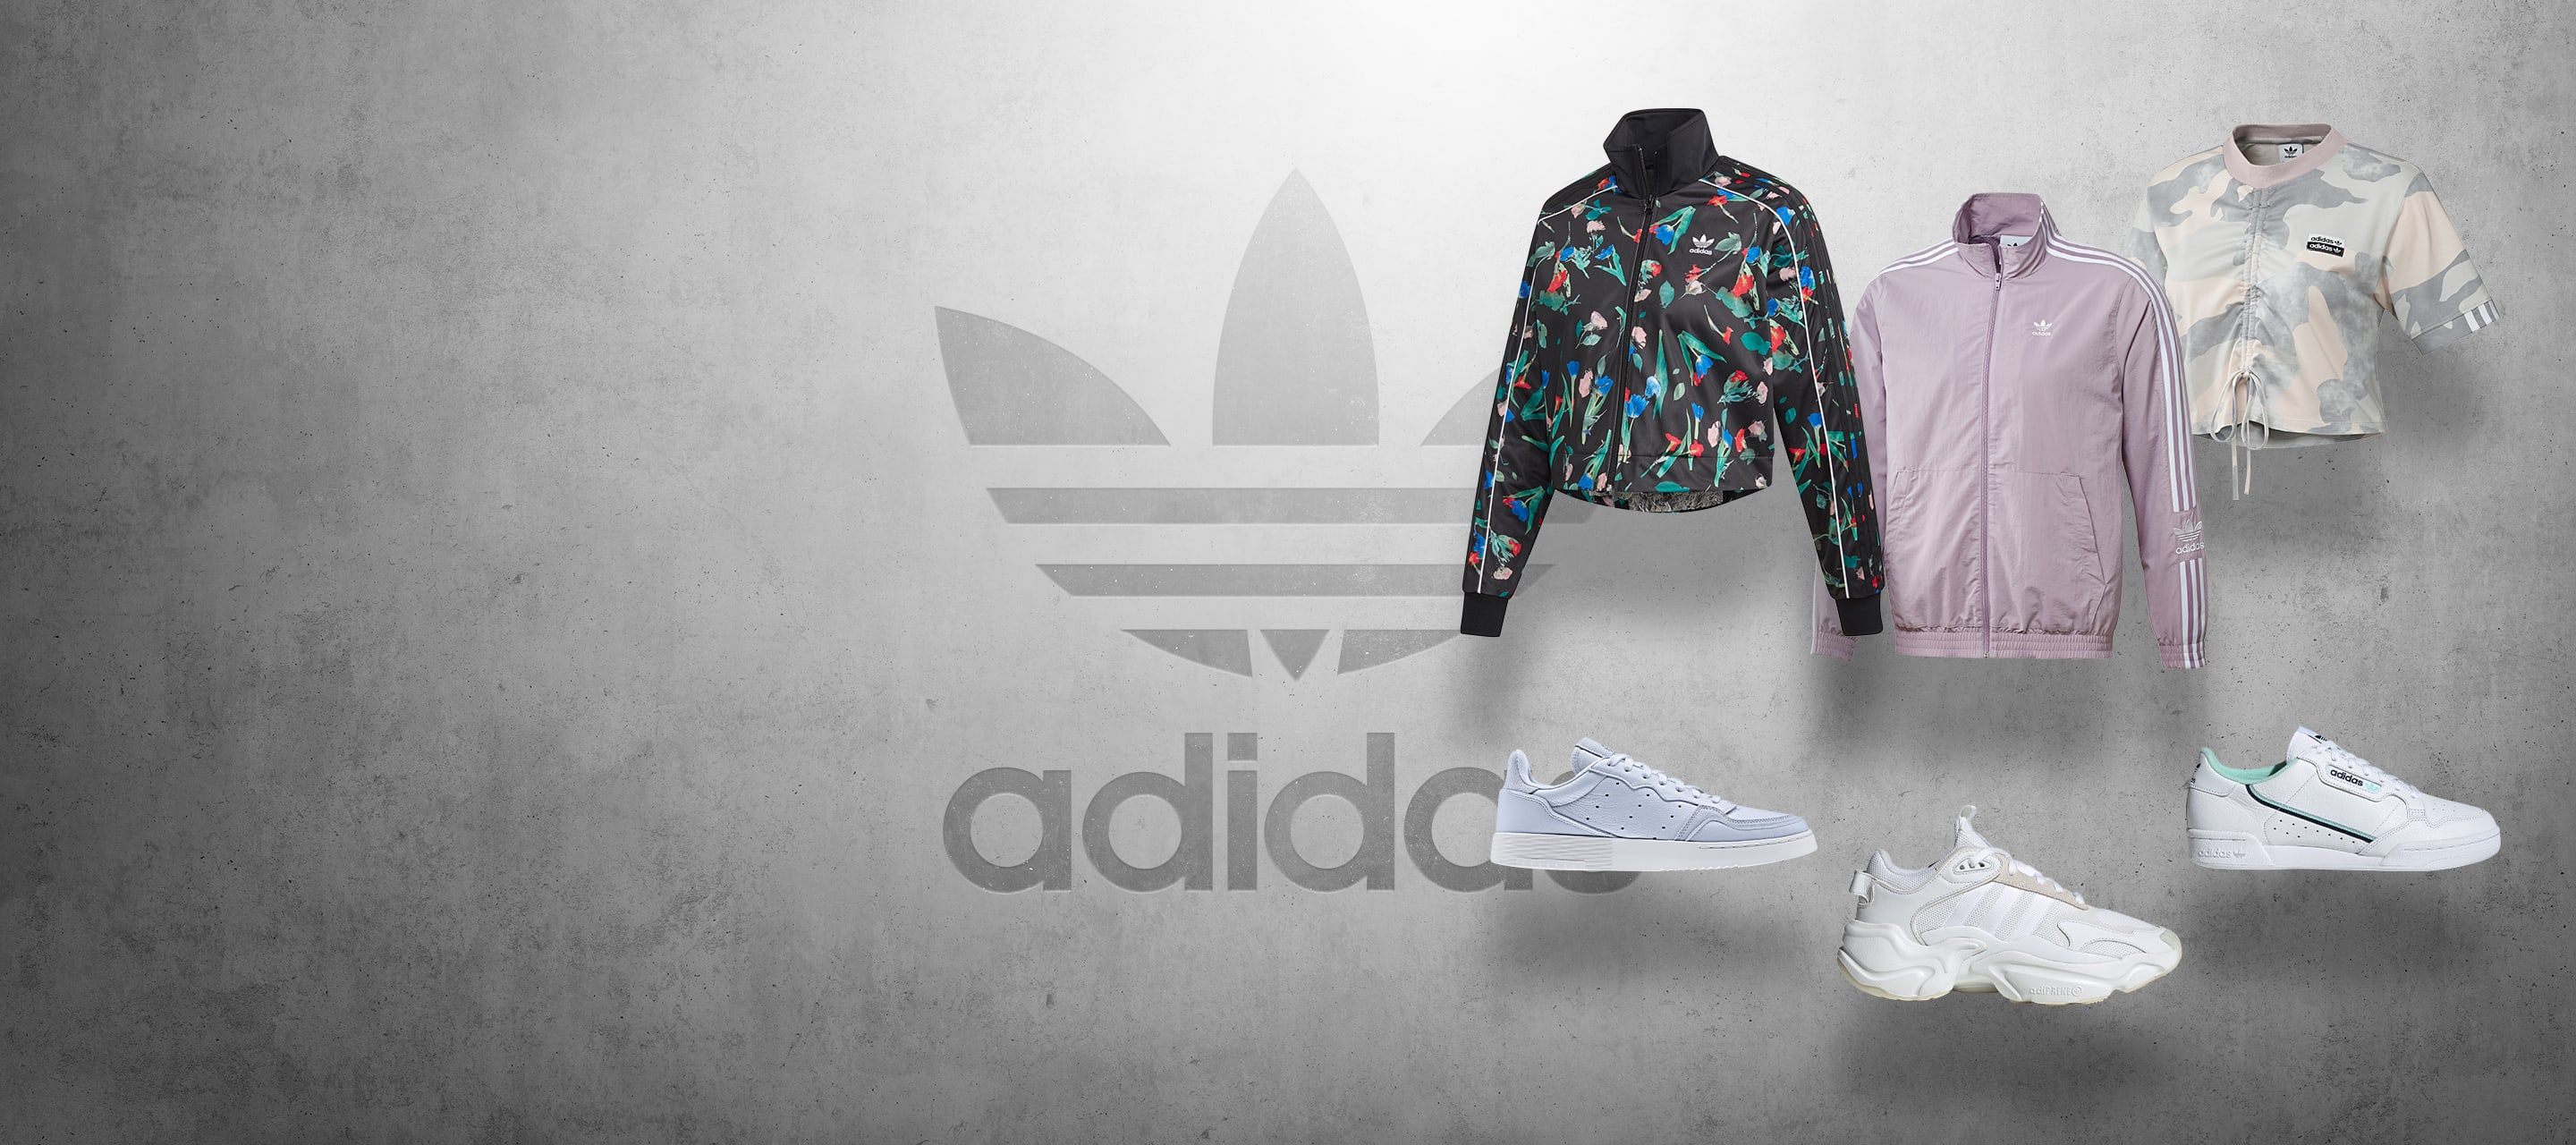 Sale   adidas Suomi   Outlet